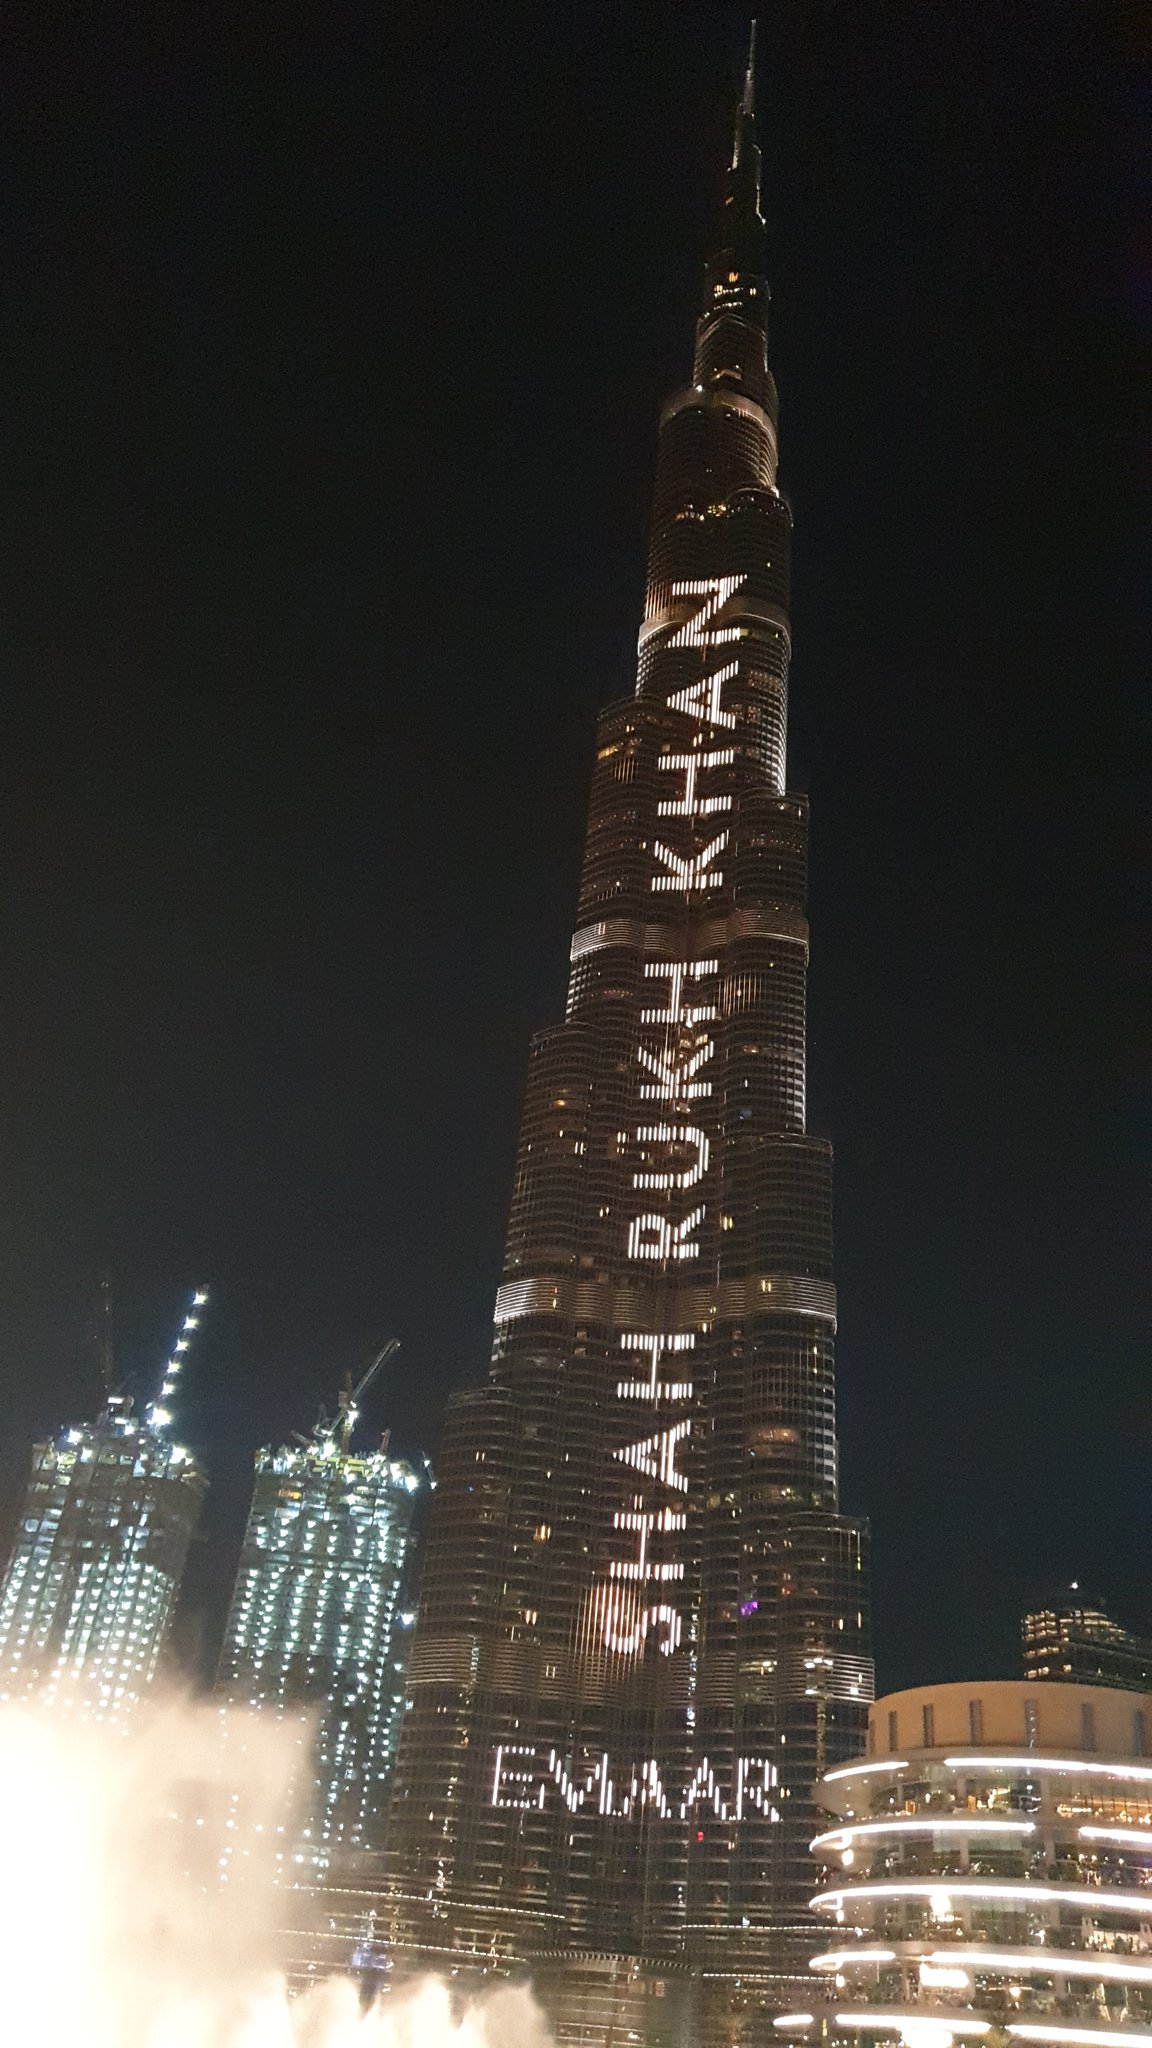 Khan became the first Bollywood star to have his name displayed on Dubai's skyscraper.